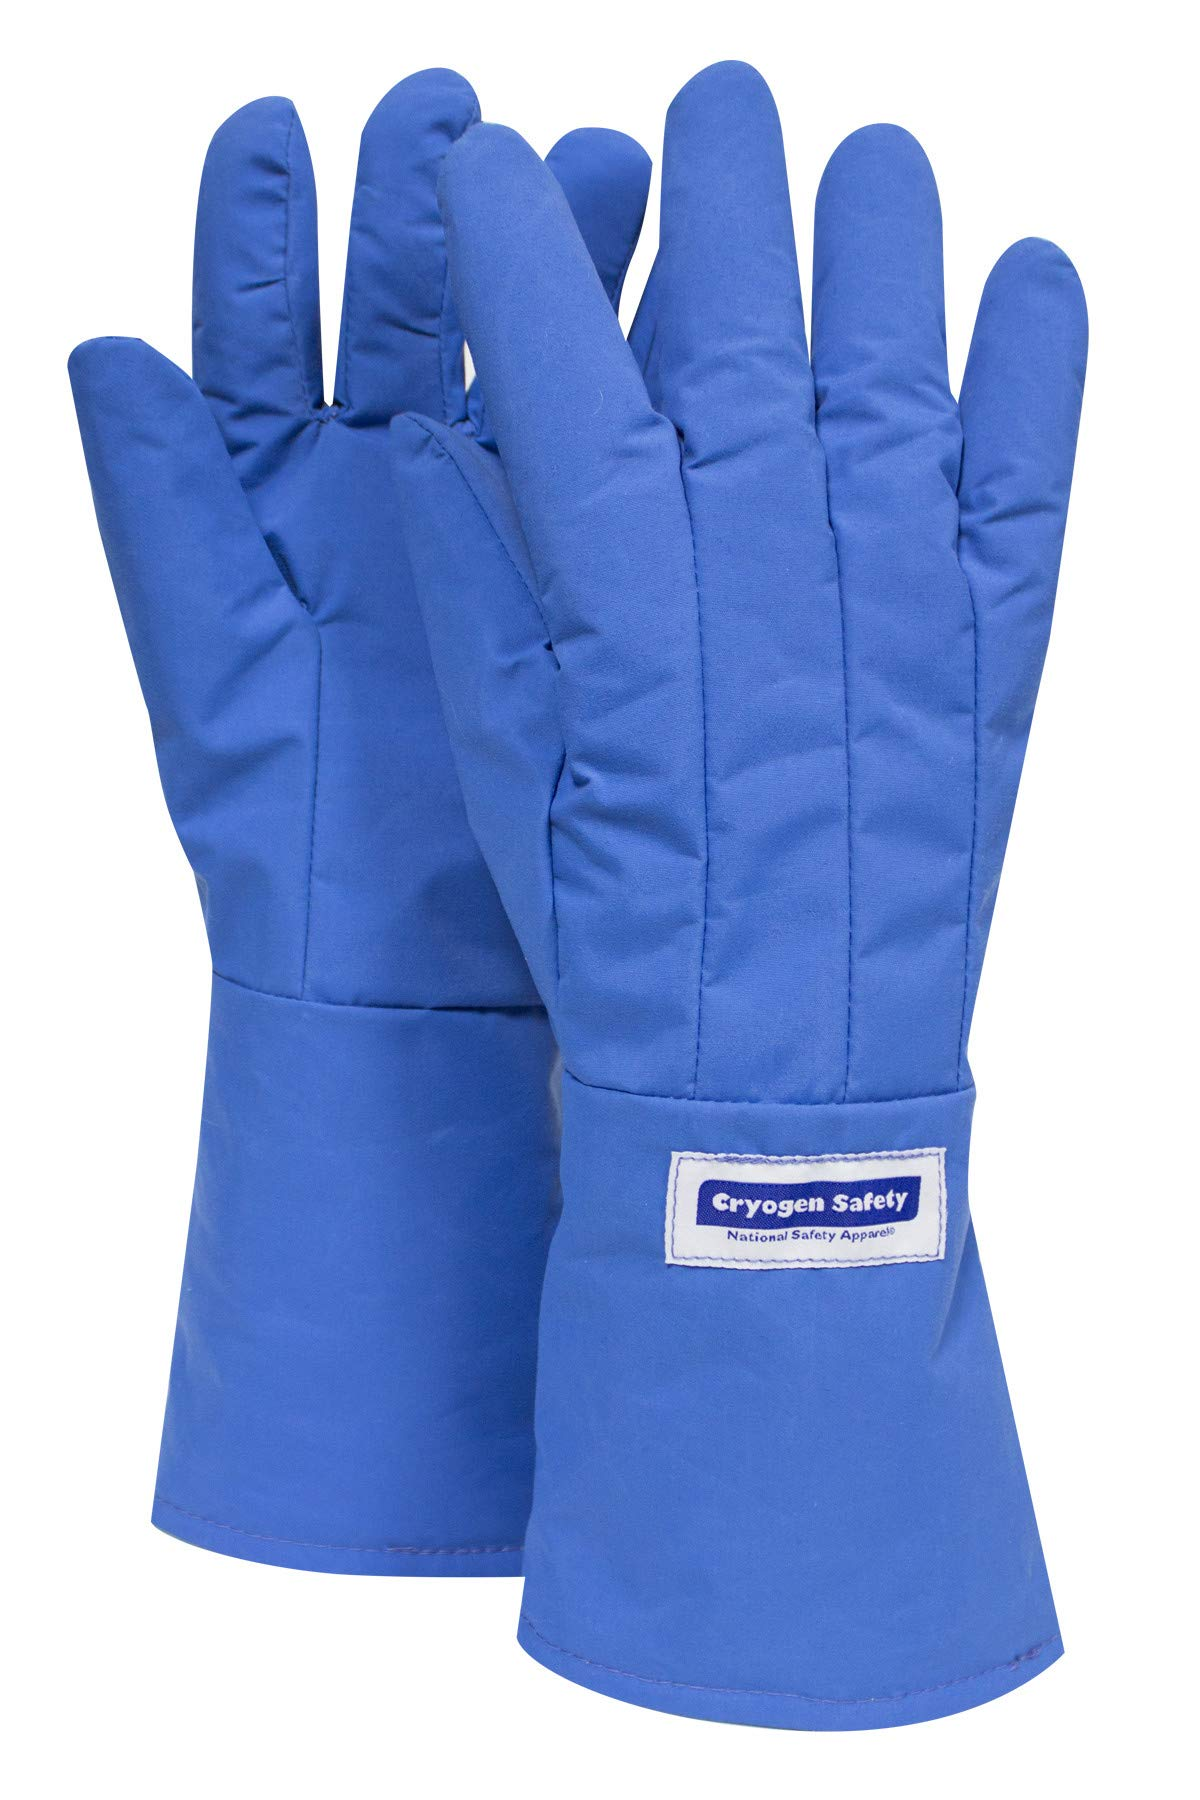 National Safety Apparel G99CRBEPLGMA Nylon Taslan and PTFE Mid-Arm Waterproof Safety Glove, Cryogenic, 14'' - 15'' Length, Large, Blue